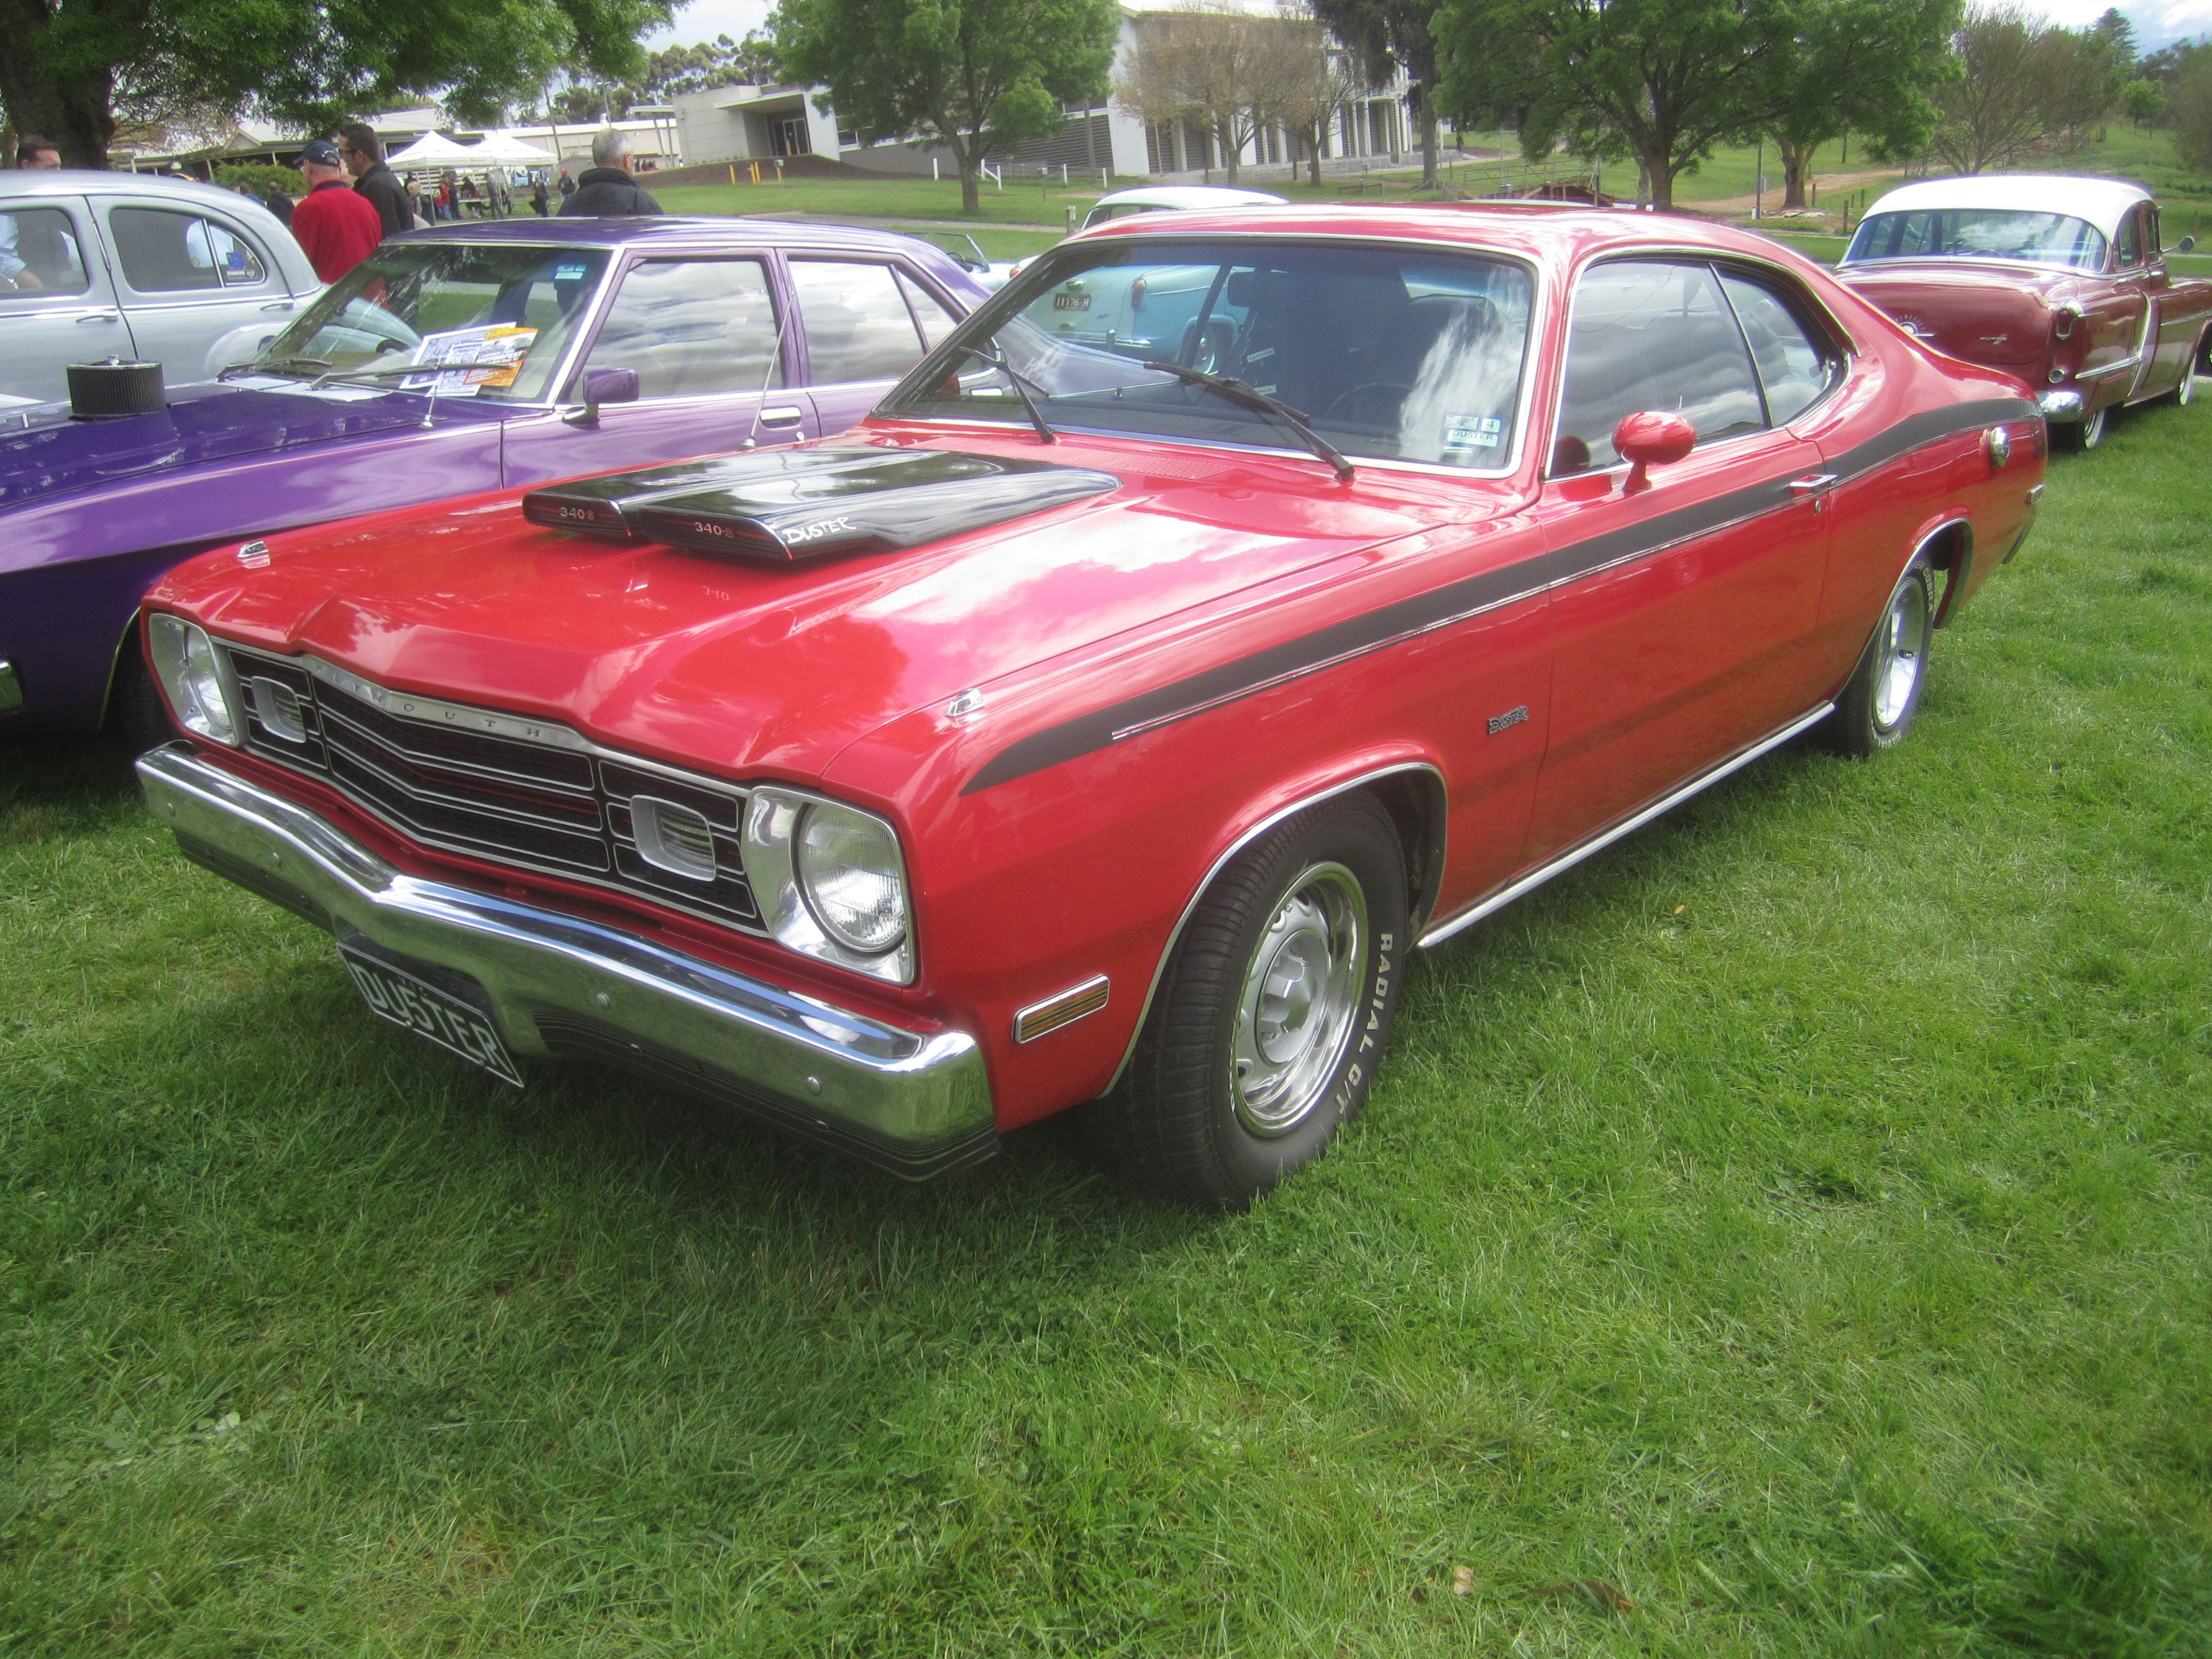 1973 Plymouth (Rapid Transit System) Duster 340   Nice Cars , Trucks ...